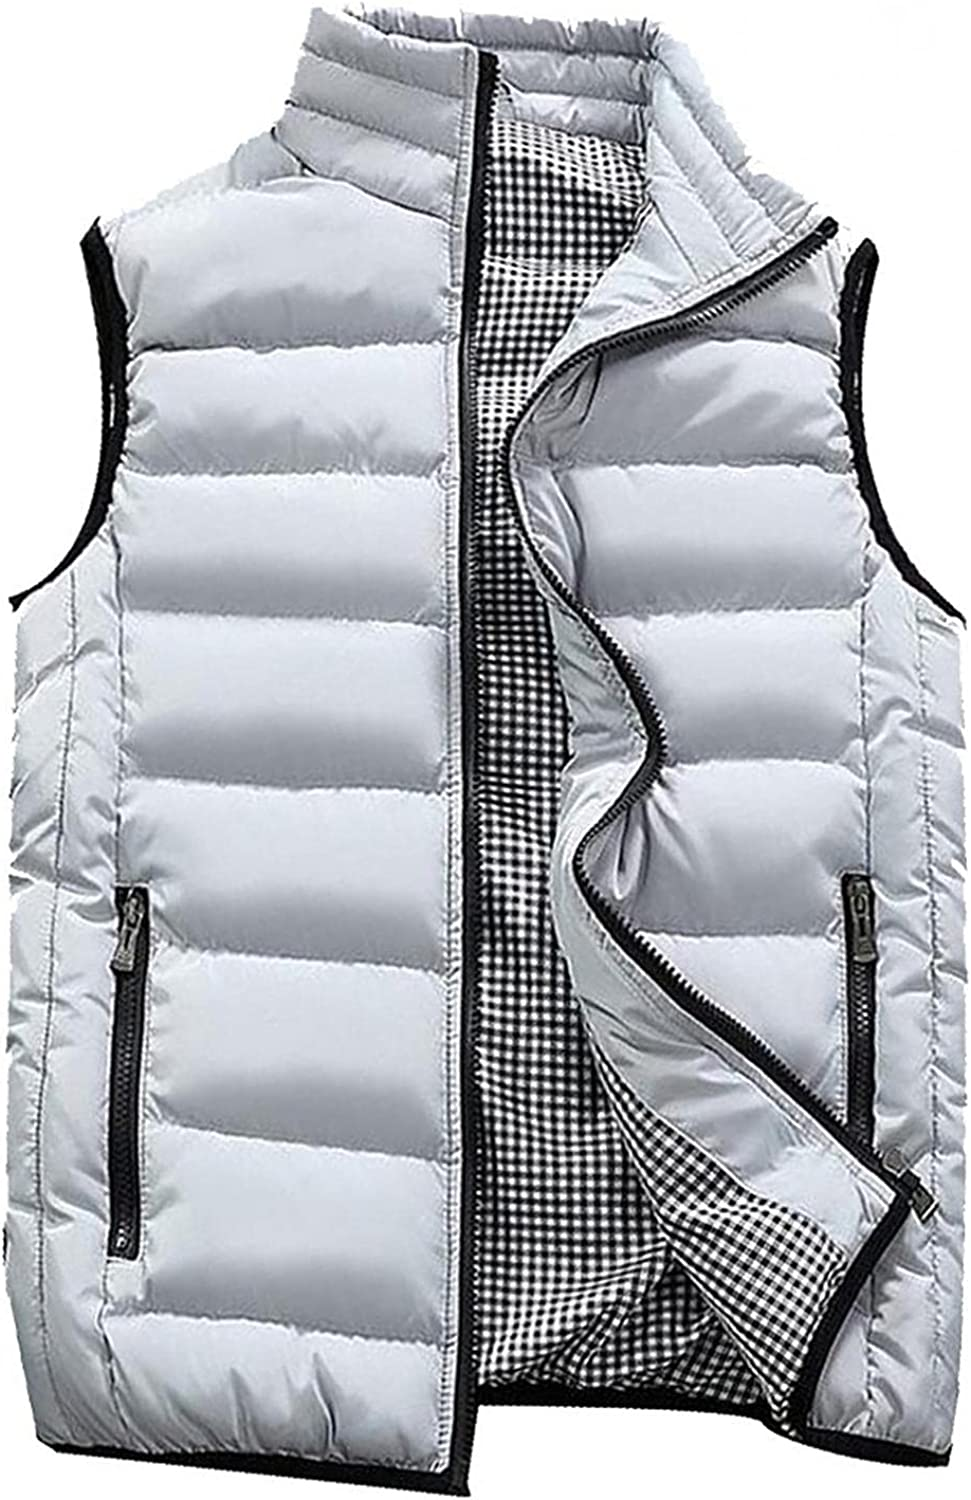 Beshion Men's Outdoor Vest Padded Coat Winter Warm Puffer Sleeveless Jacket Thick Vest Lightweight Outwear with Pocket